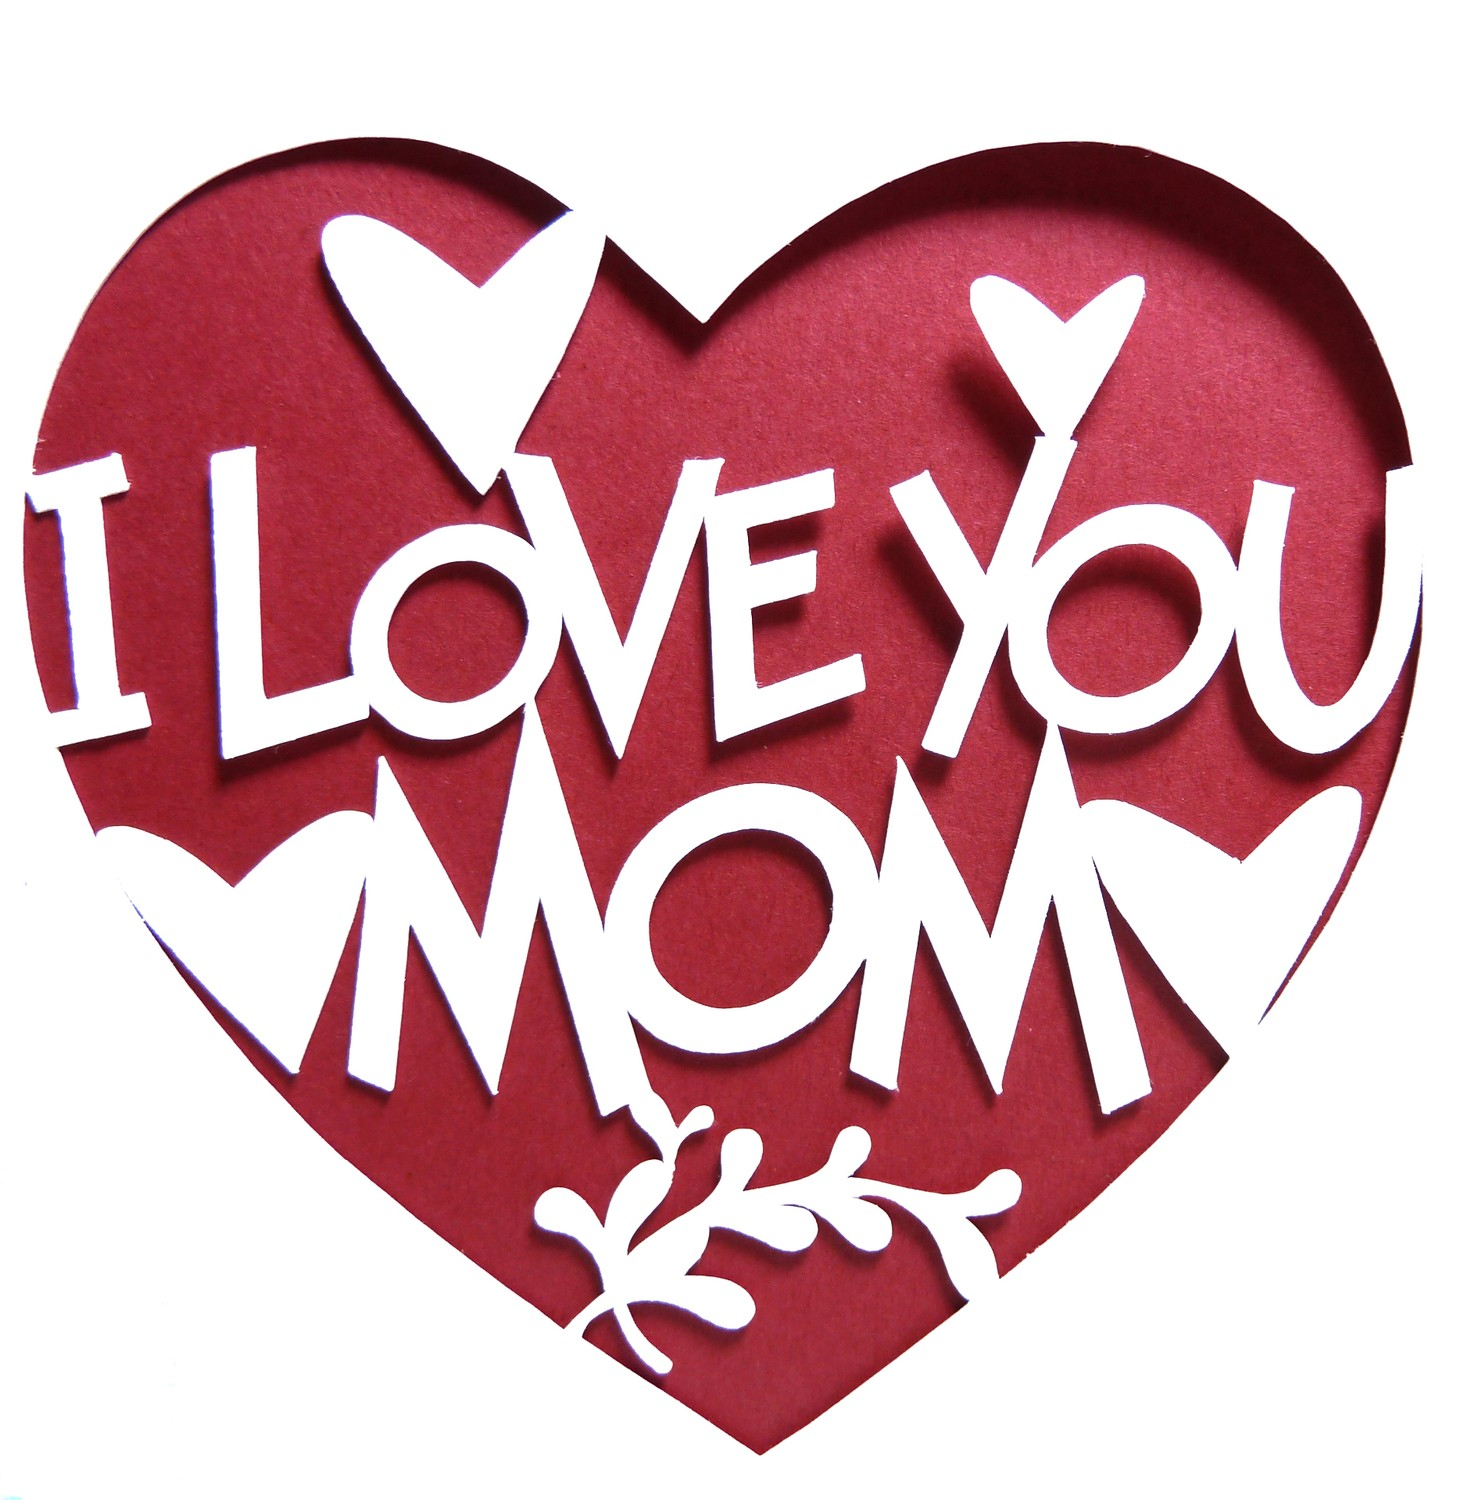 love my mom picture full hd i love my mom art i love my mom picture 1460x1500